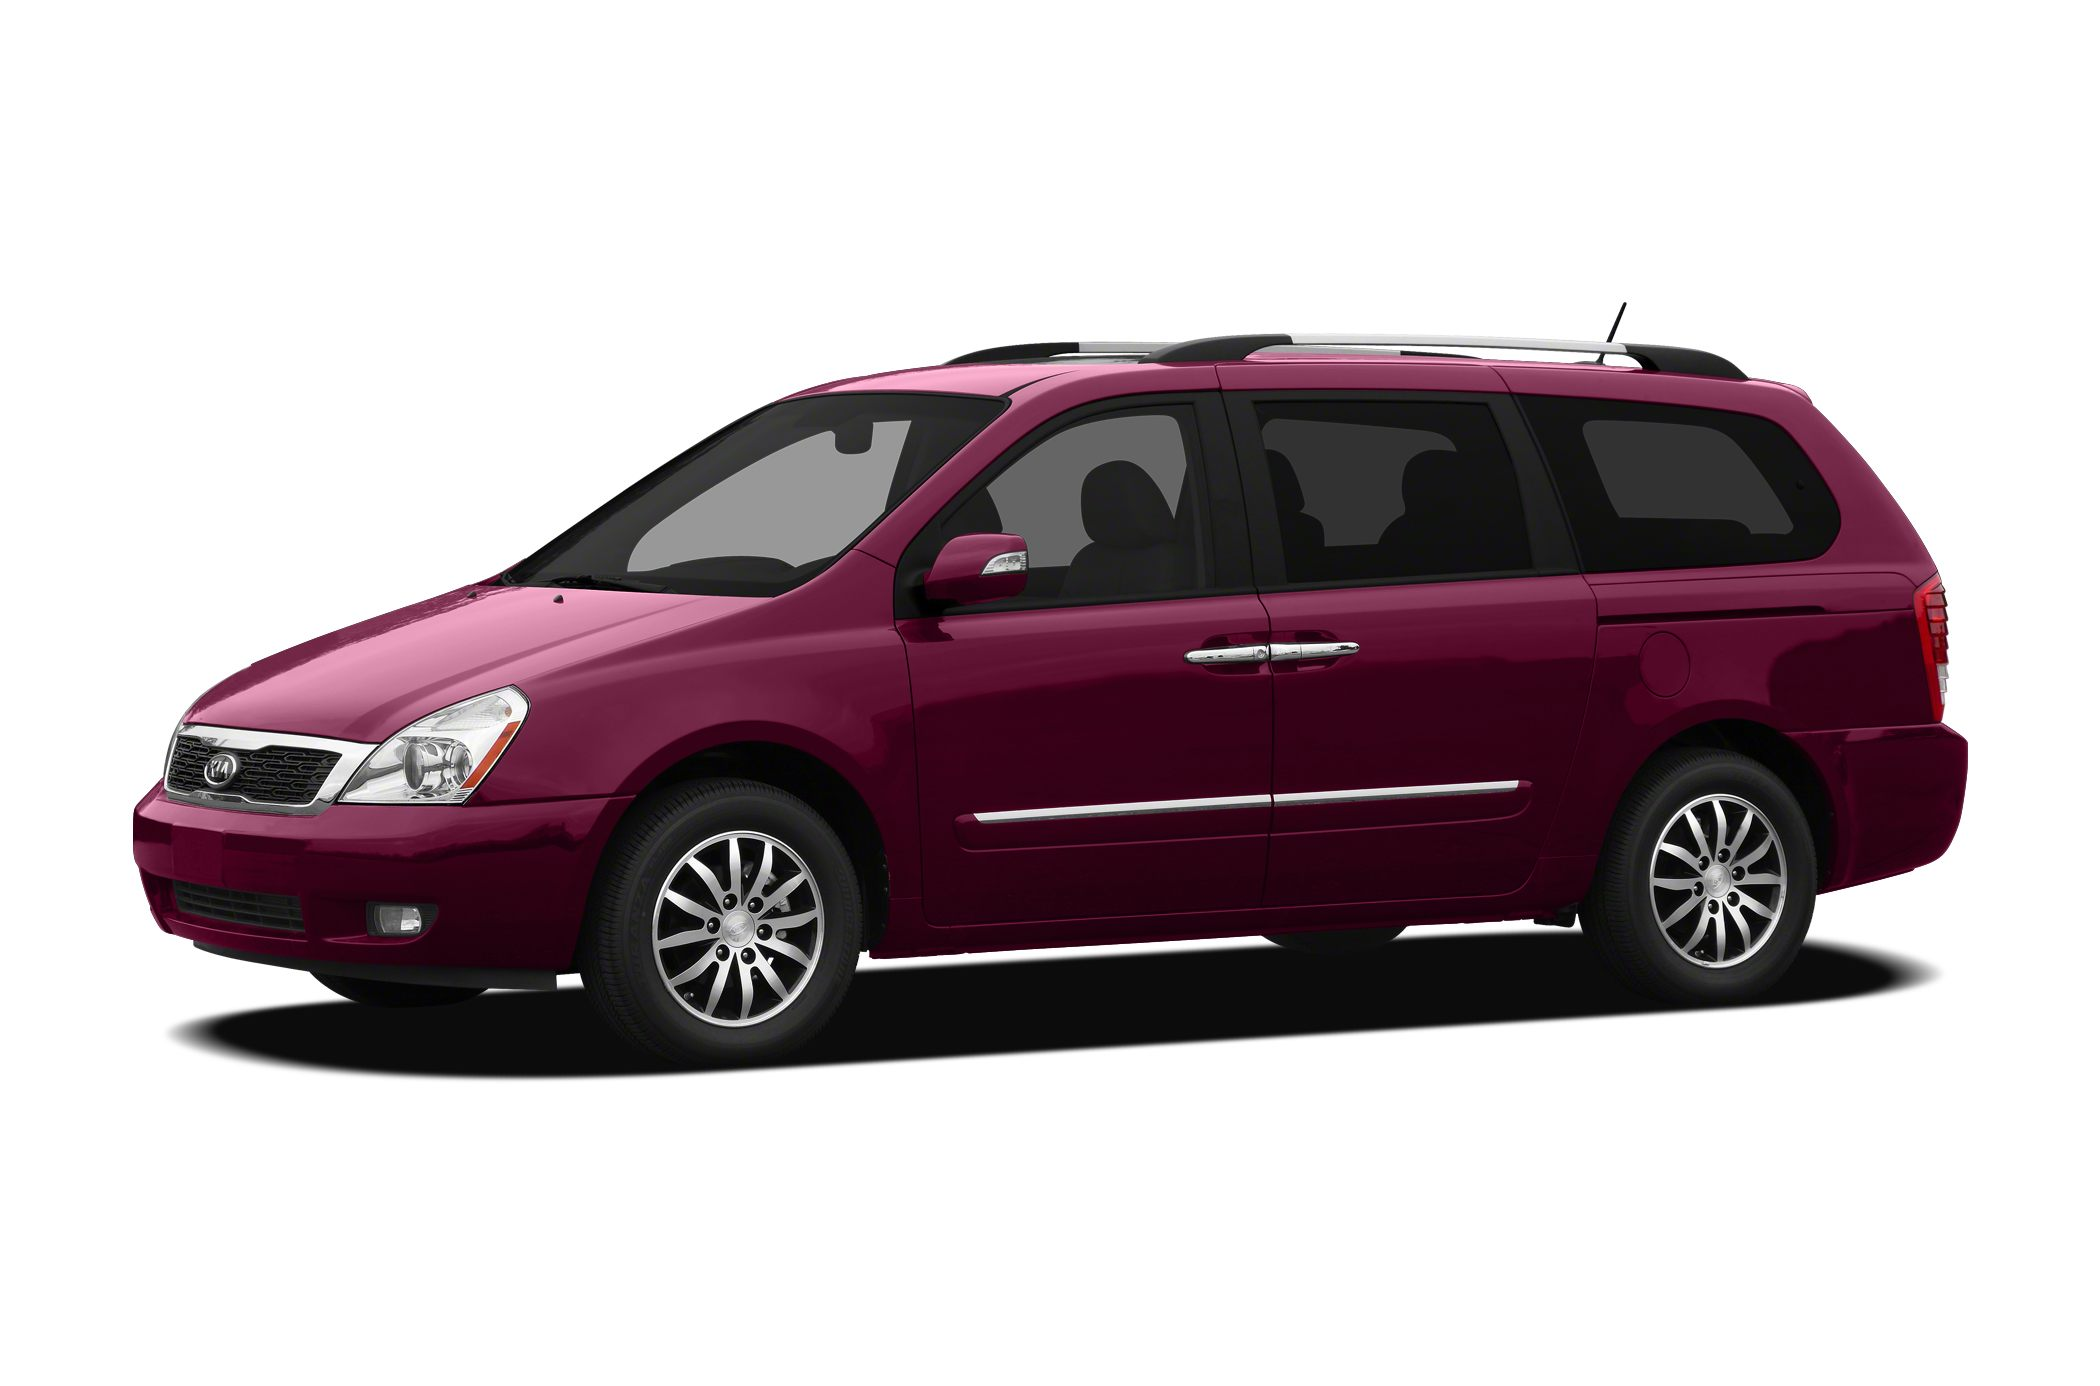 2011 Kia Sedona LX Minivan for sale in Fort Worth for $9,999 with 93,470 miles